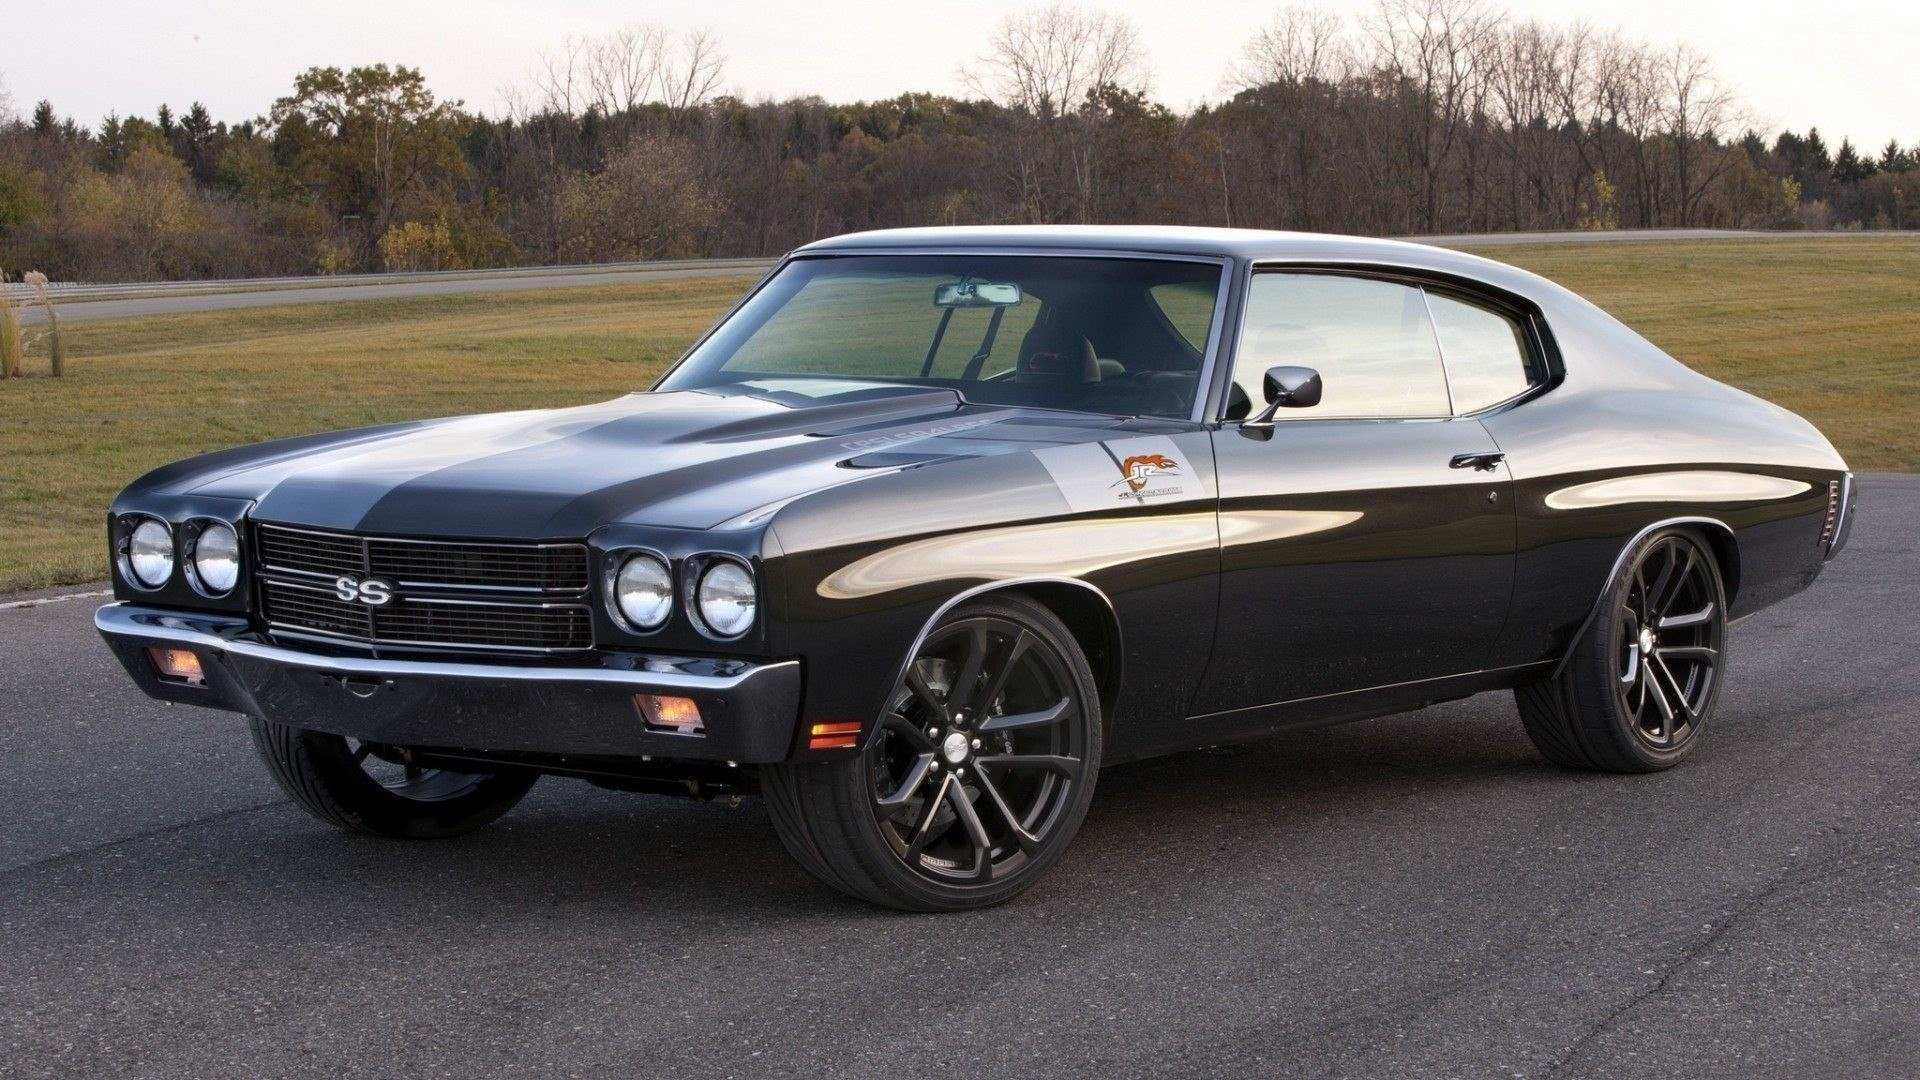 New Chevelle Ss >> 2020 Chevrolet Chevelle Ss Release Date Price And Specifications